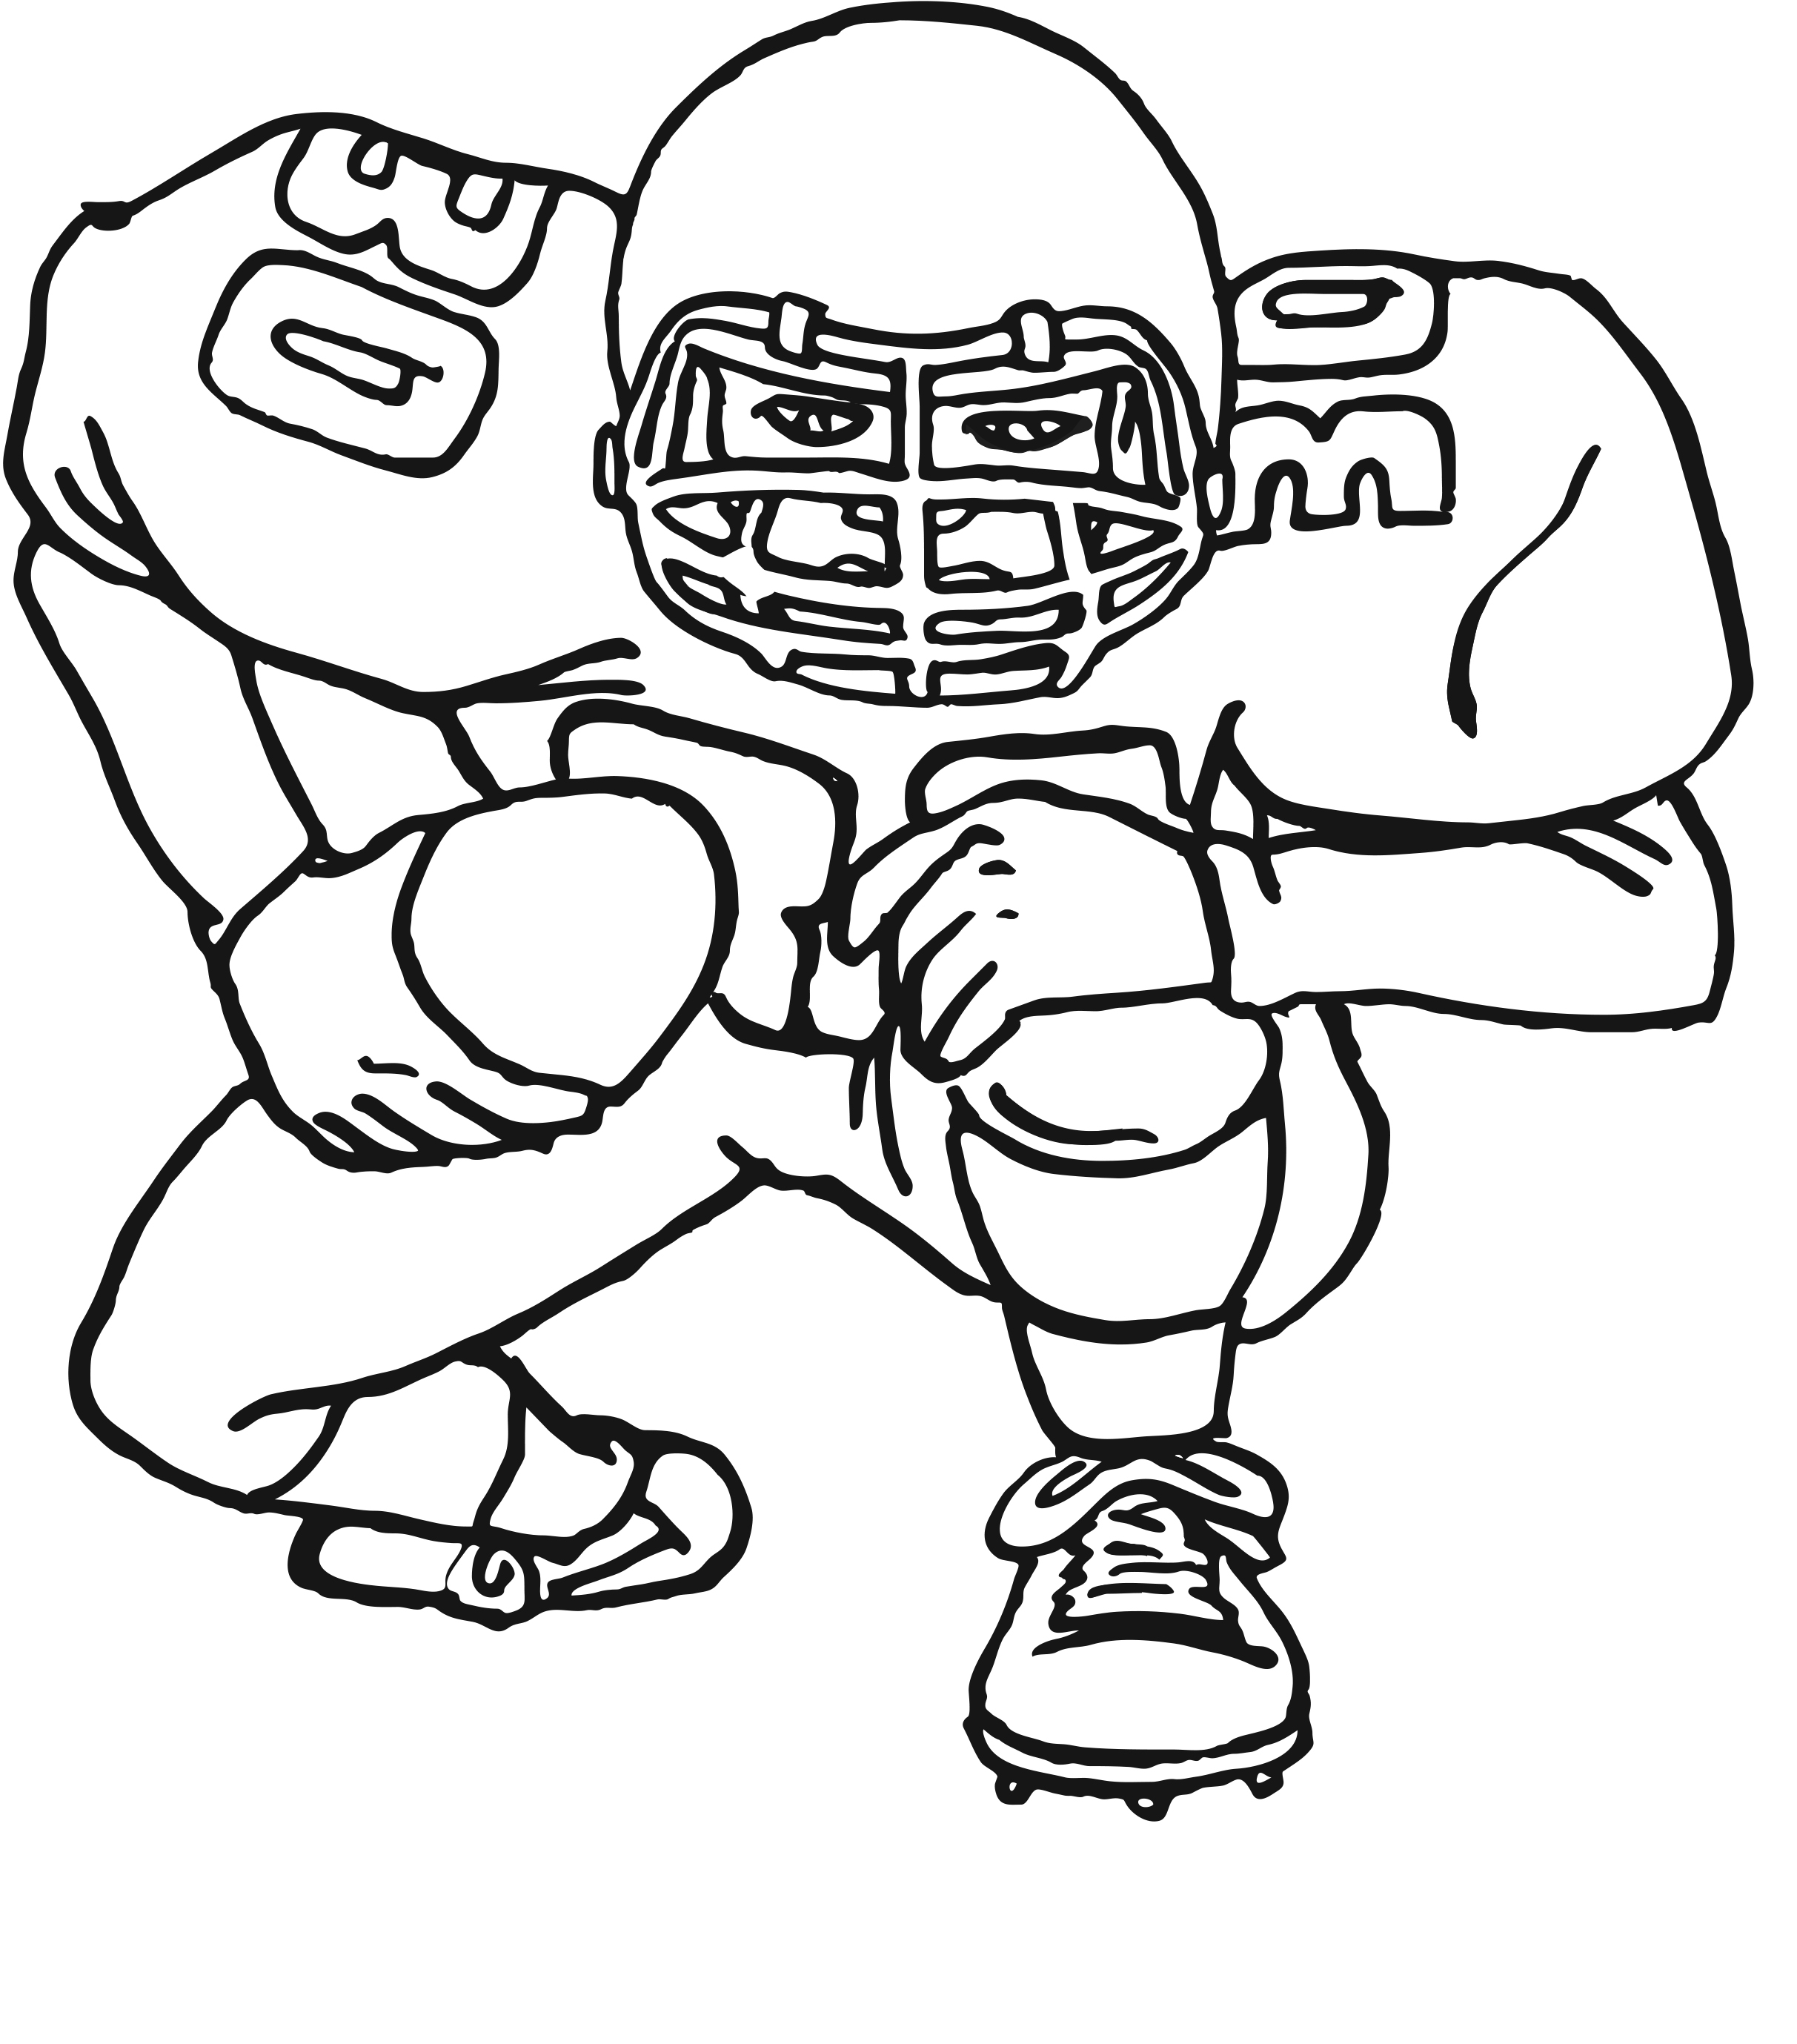 football color page free printable football coloring pages for kids color page football